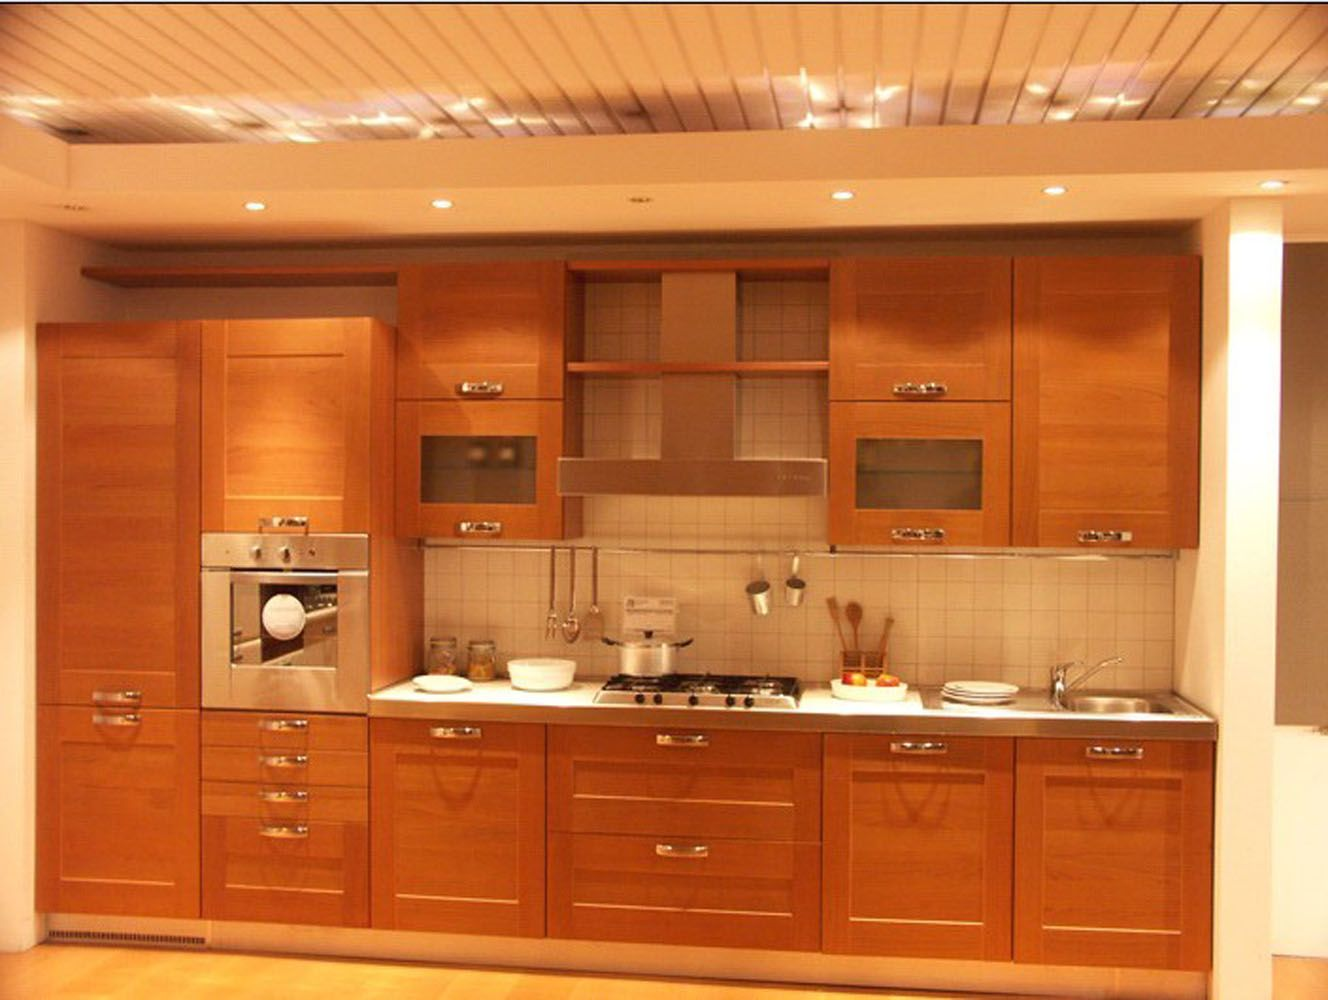 Images Of Hard Maple Shaker Style Kitchen Cabinets In Full Overlay - Shaker style furniture for your kitchen cabinets